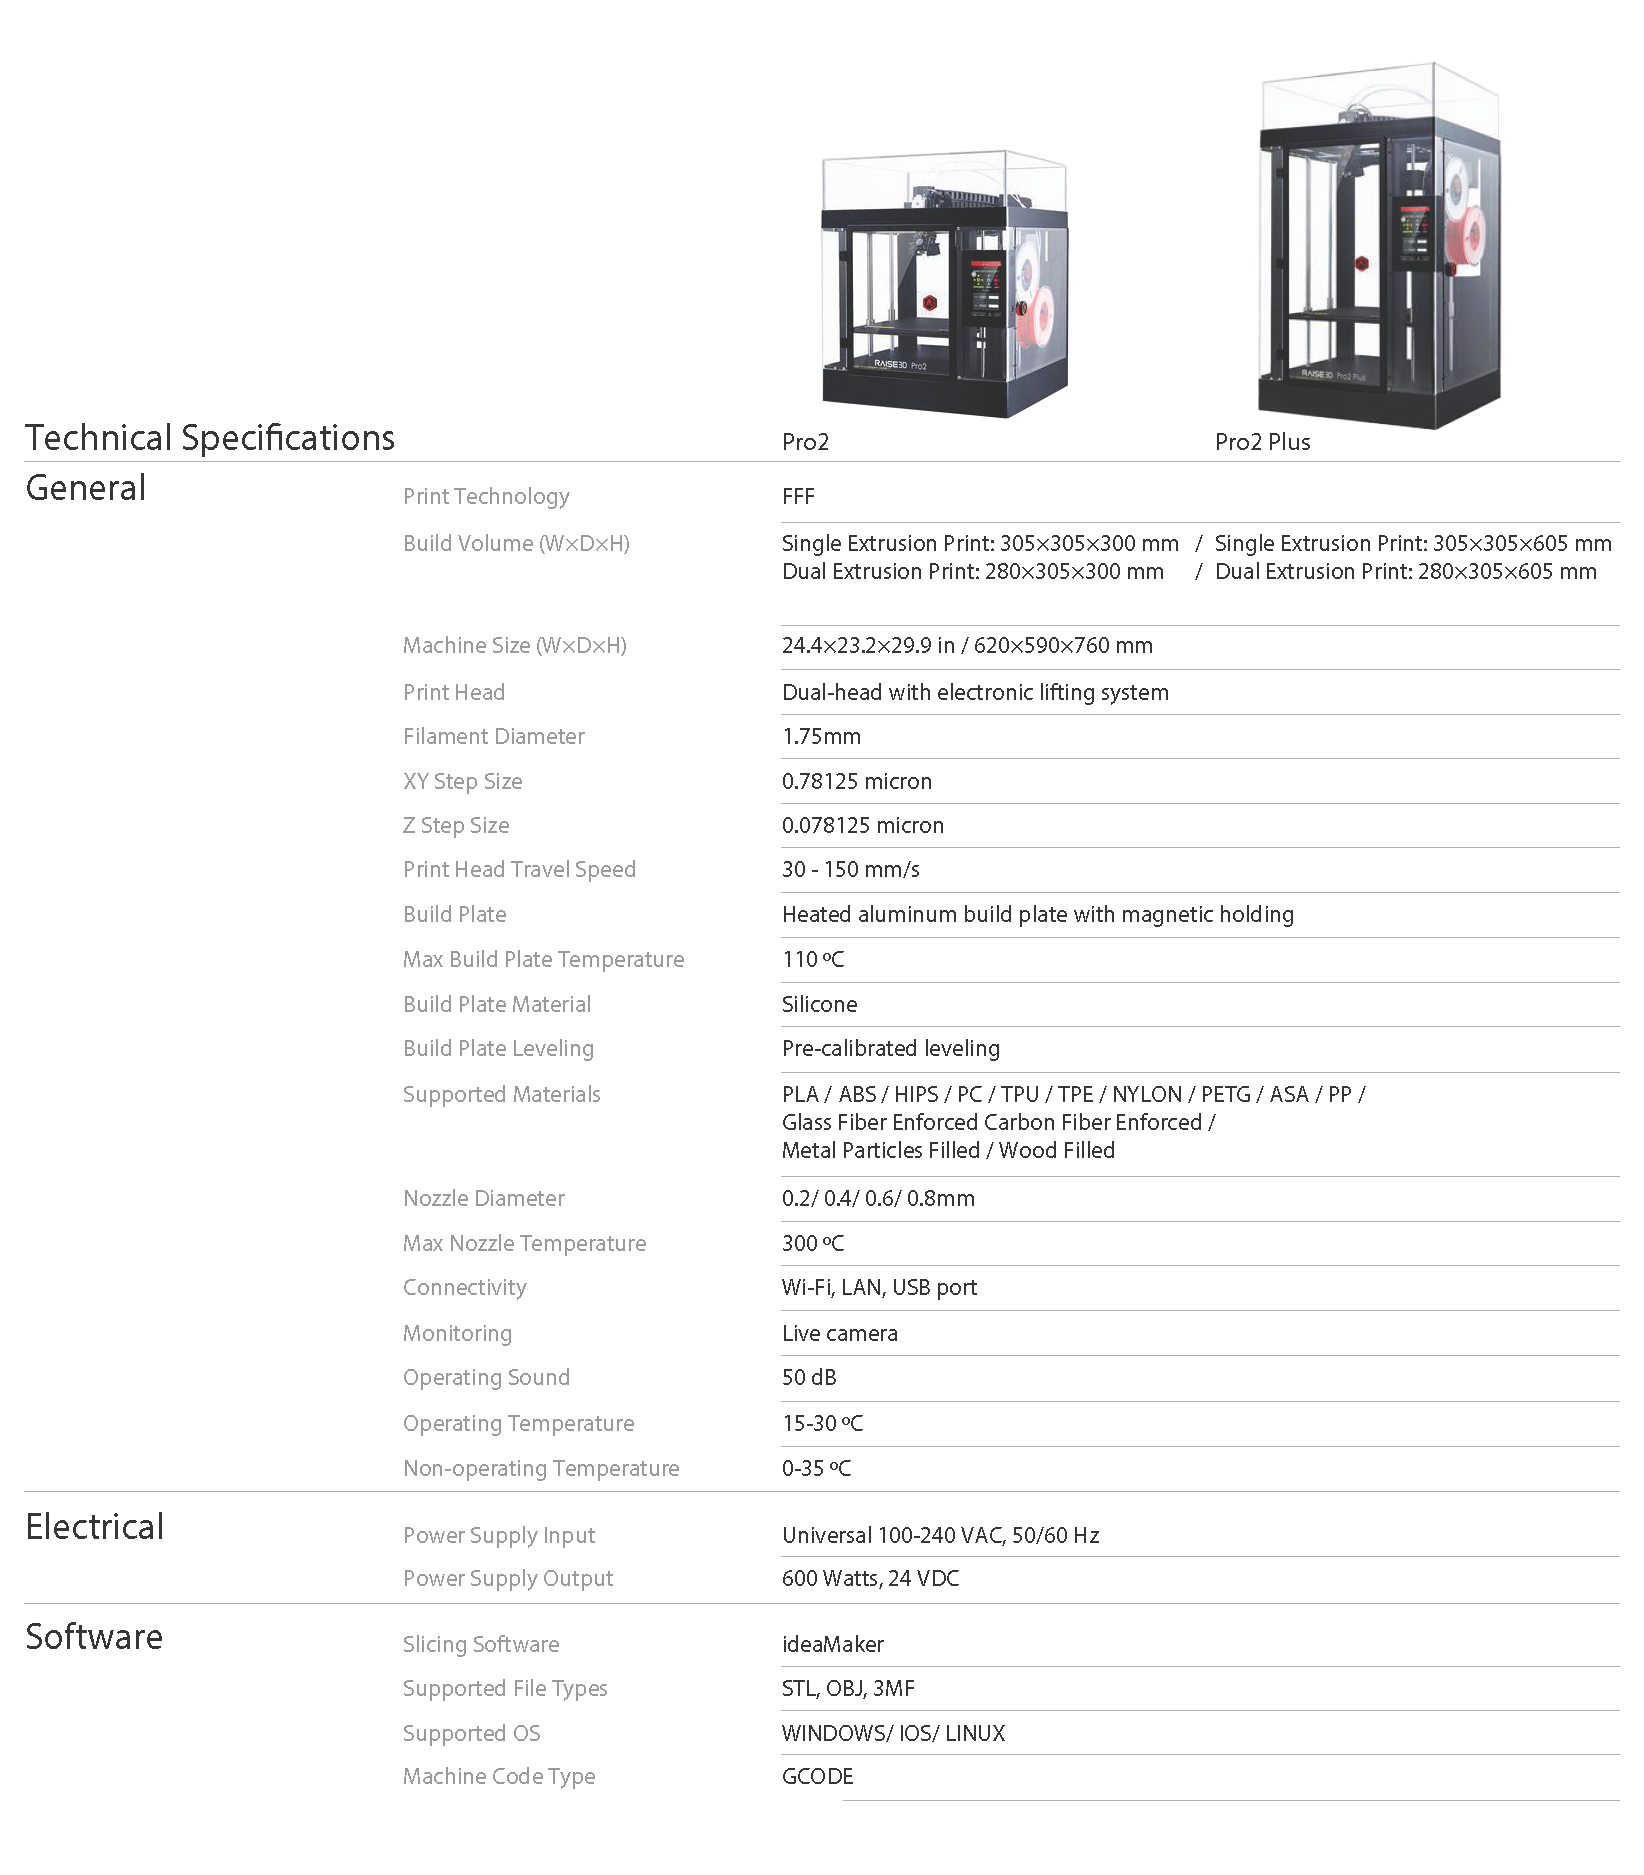 180828_pro2-pro2-plus-raise-3d-printers_specification-sheet.png